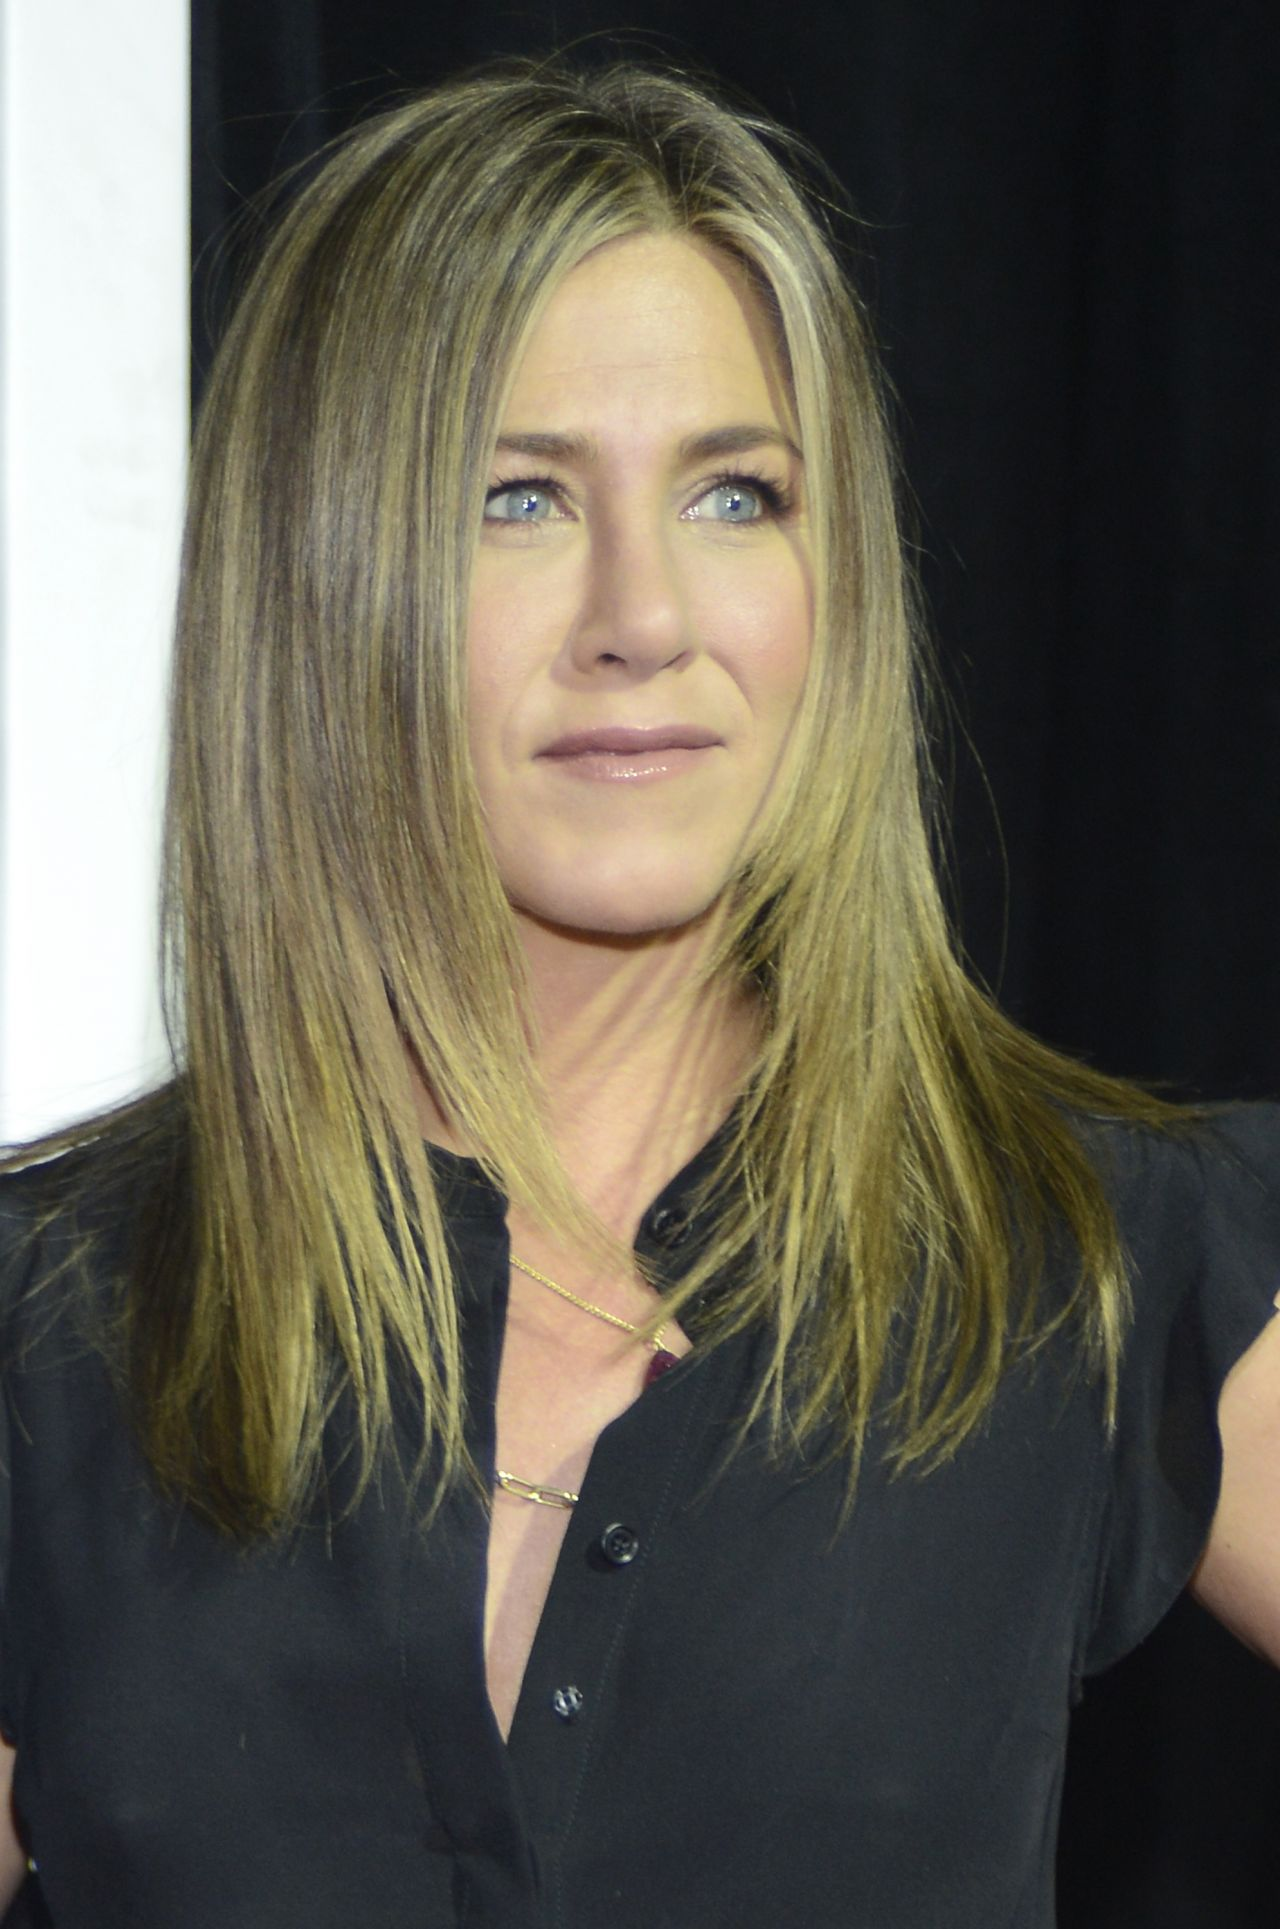 jennifer-aniston-hbo-s-the-leftovers-season-2-premiere-atx-television-festival-in-austin_1